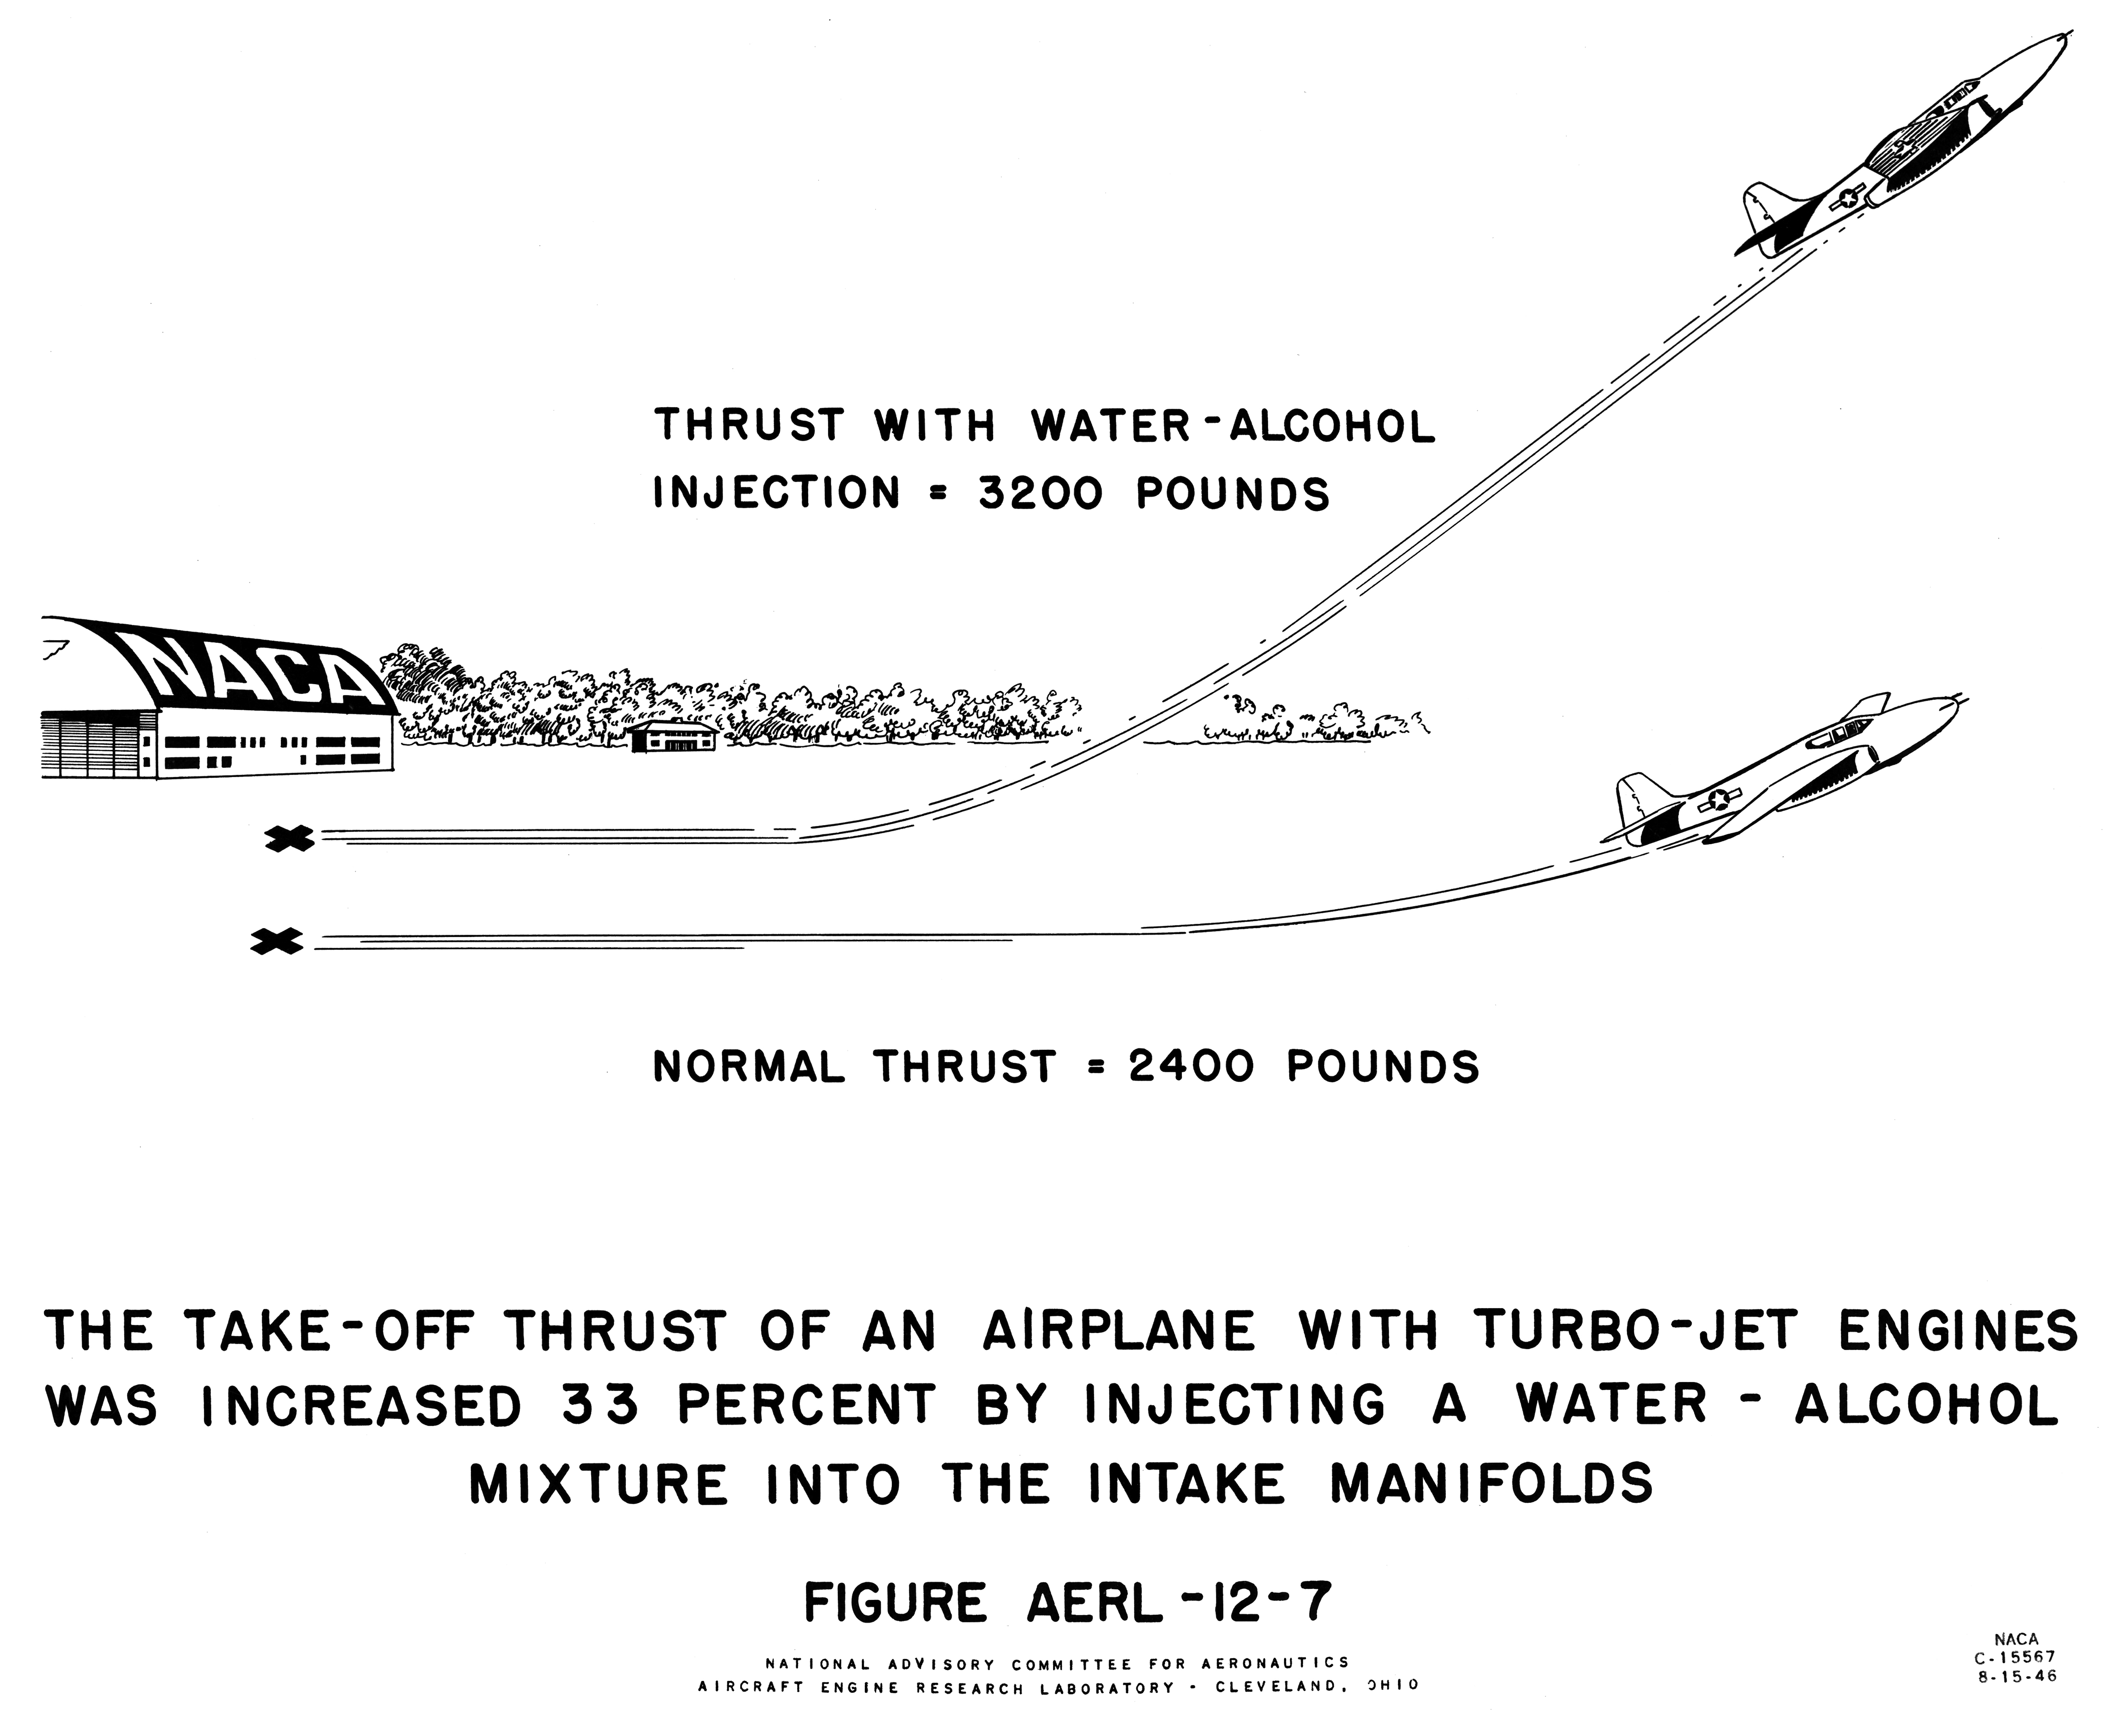 Turbojet Enhancements Nasa Glenn Research Center Jet Engine Diagram Of An Axialflow Chart From Budget Submission Showing Increase In Takeoff Thrust By Injecting A Water Alcohol Mixture